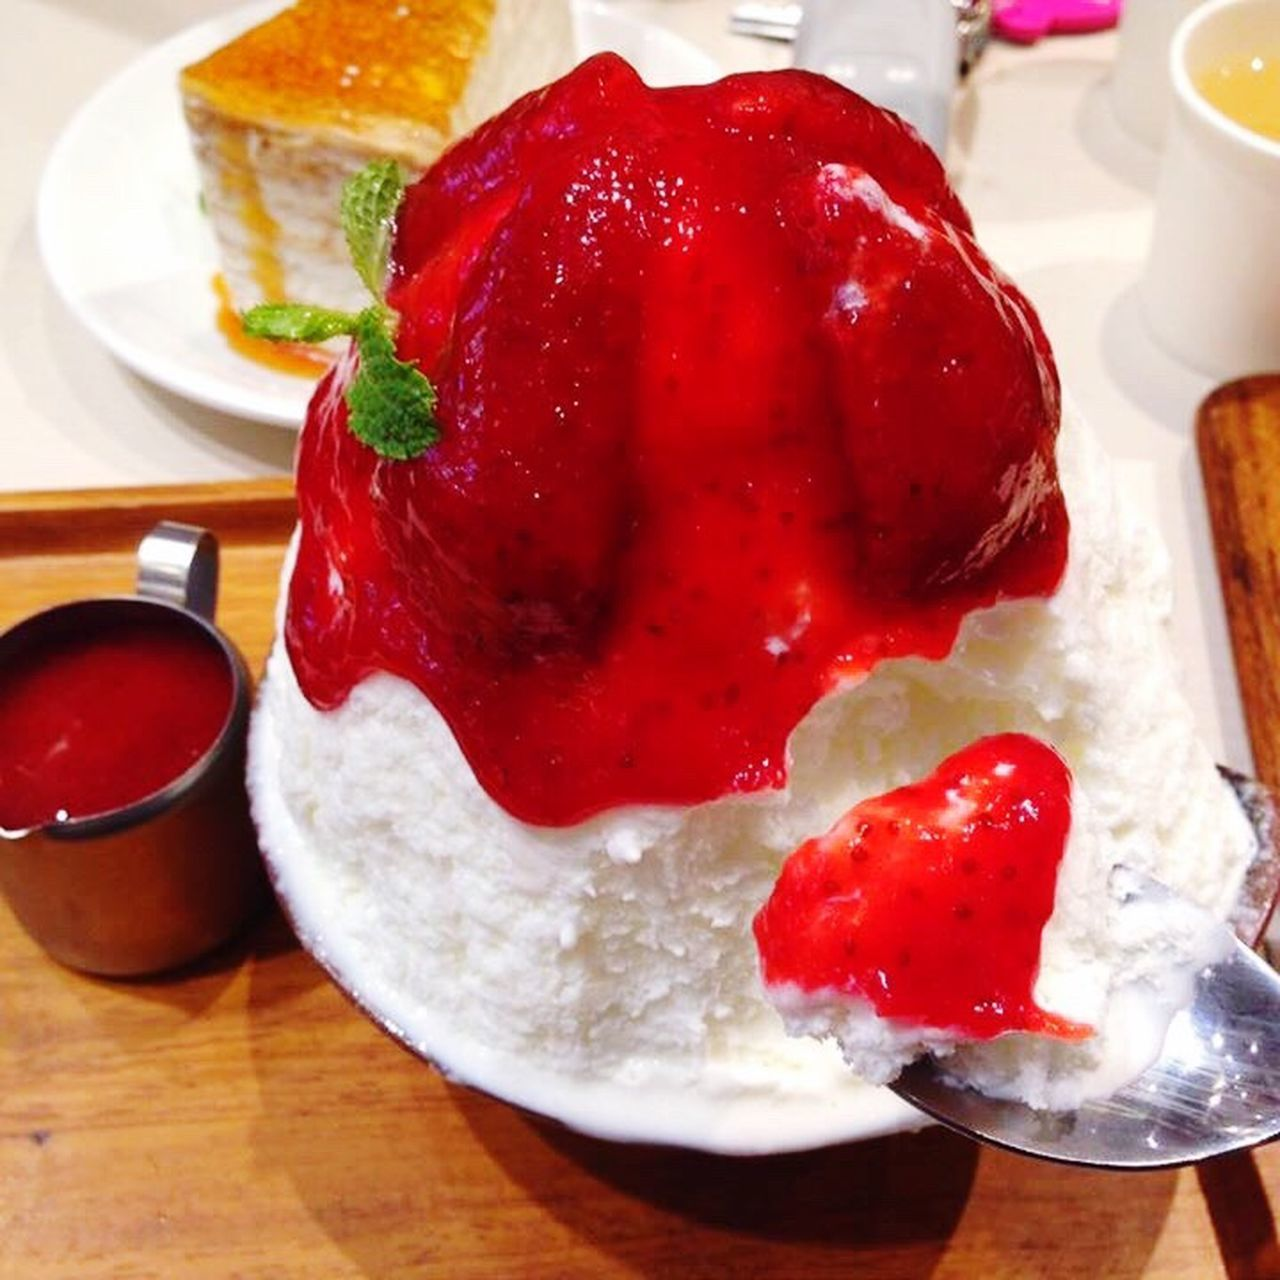 Bingsu Kakigori Ice Cream Ice Sweet Sweet Food Food And Drink Food Freshness Still Life Indoors  Ready-to-eat Table Indulgence Plate Red Unhealthy Eating Close-up Dessert Temptation No People Serving Size Fried Egg Poached Day